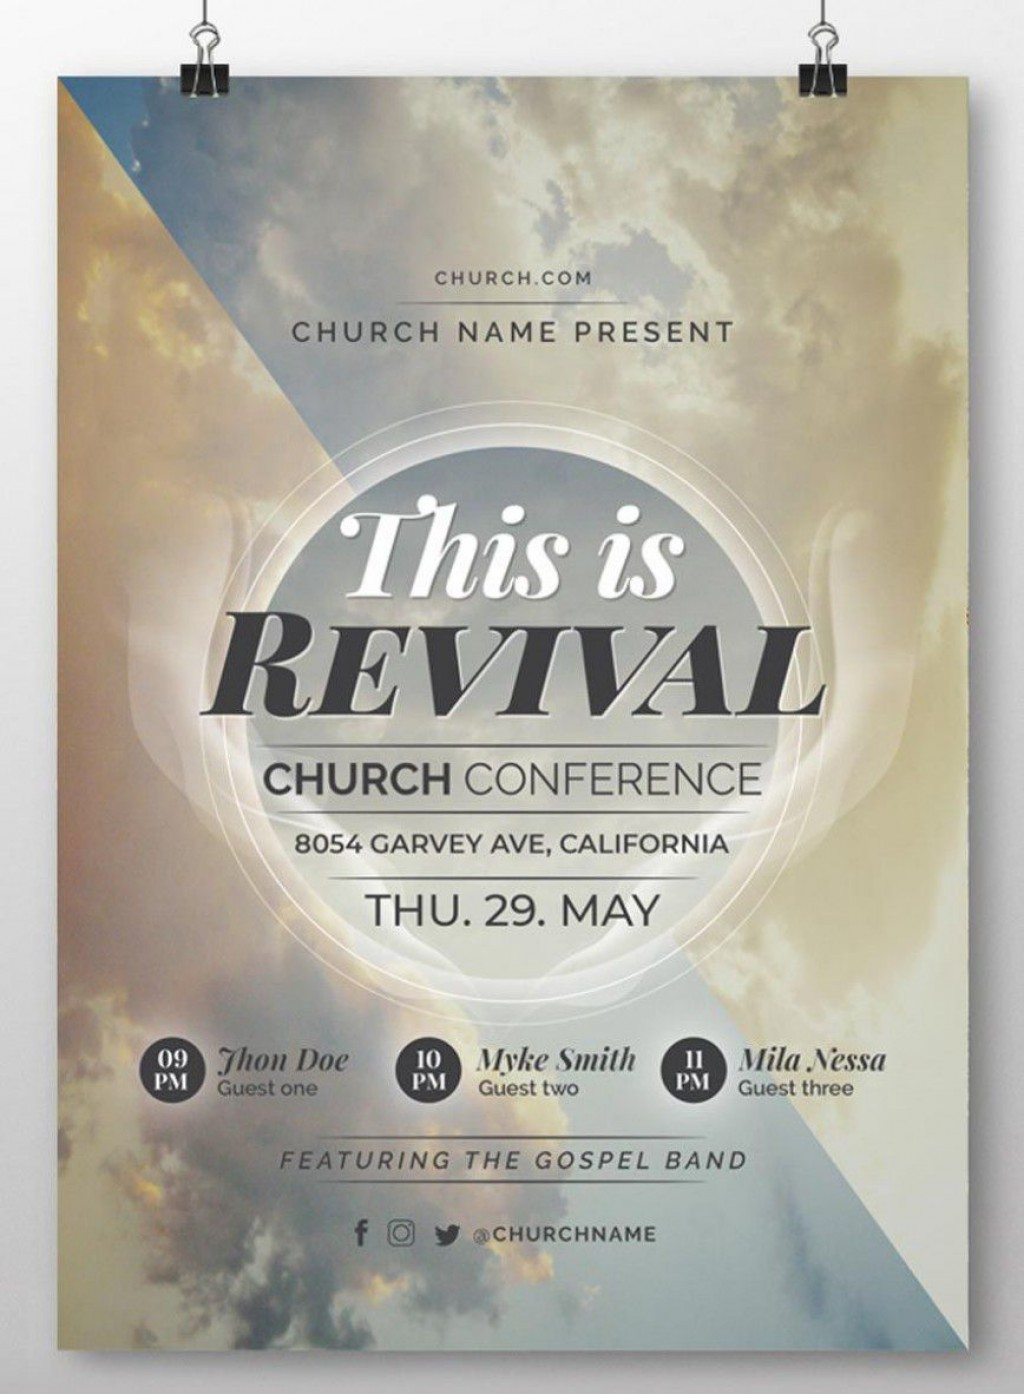 001 Dreaded Church Flyer Template Free Photo  Easter Anniversary Conference PsdLarge